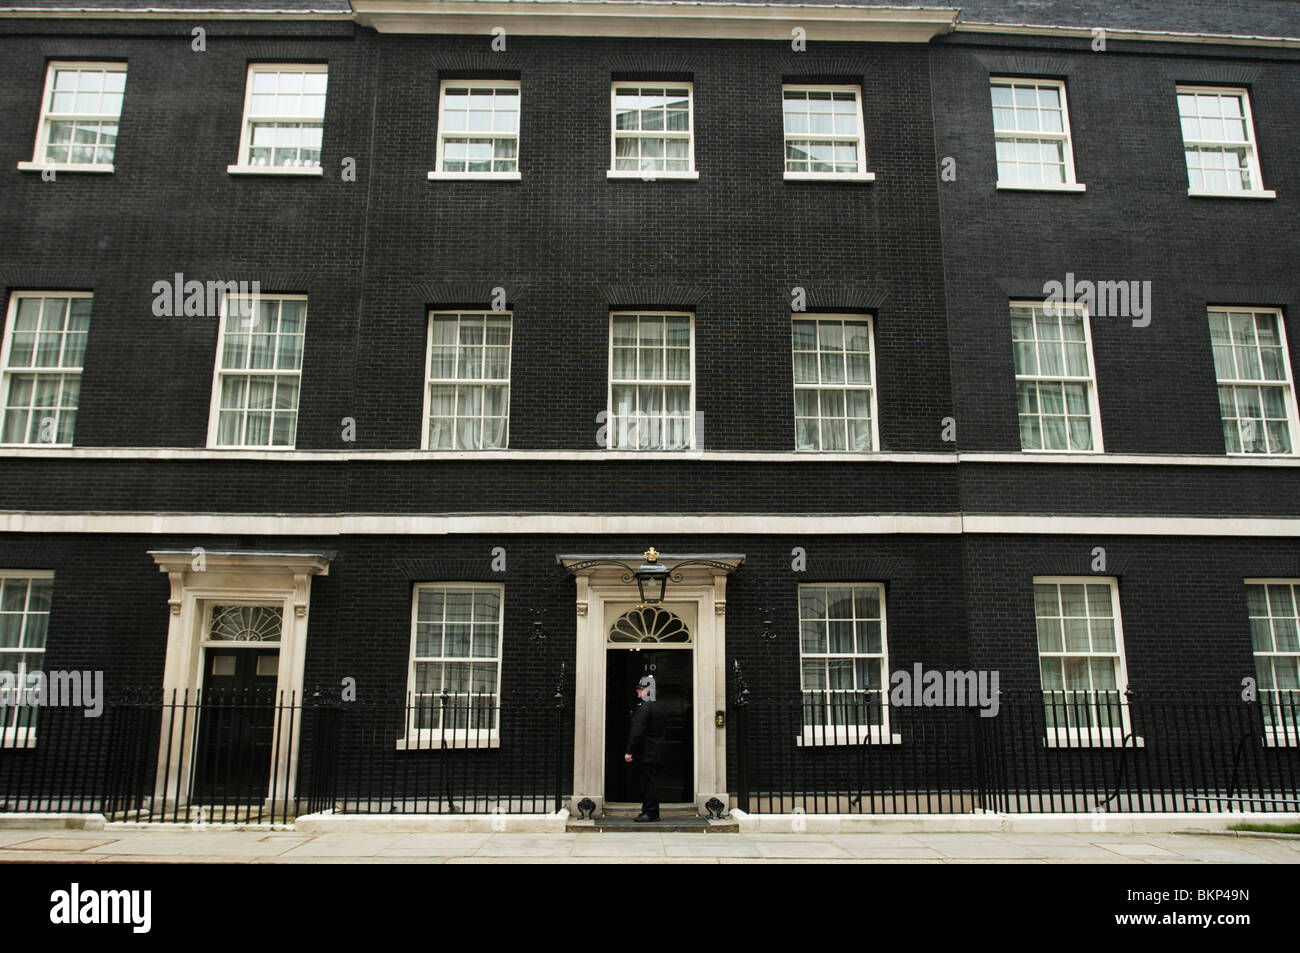 10 downing street london prime minister residence stock photo royalty free image 29375185. Black Bedroom Furniture Sets. Home Design Ideas